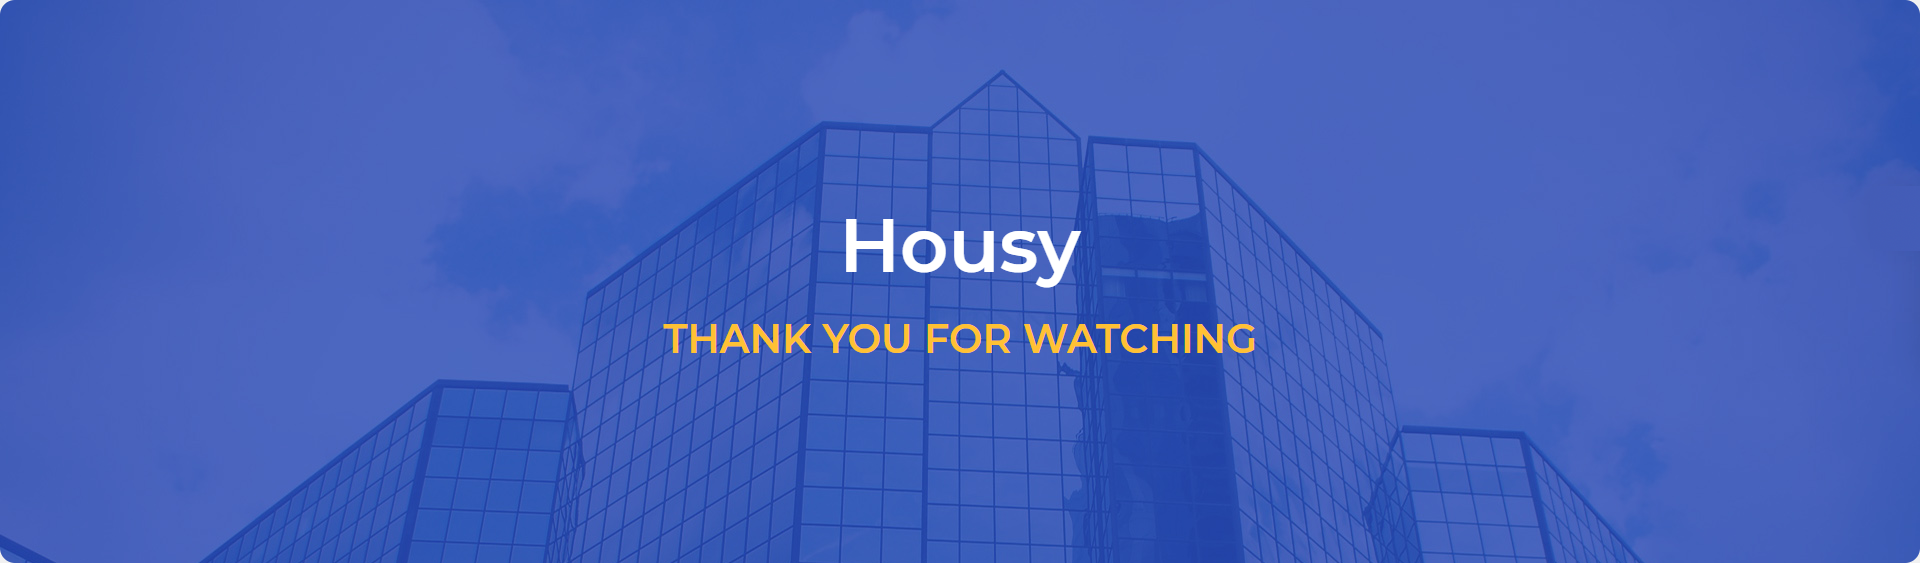 Housy - Real Estate HTML5 Template - 11